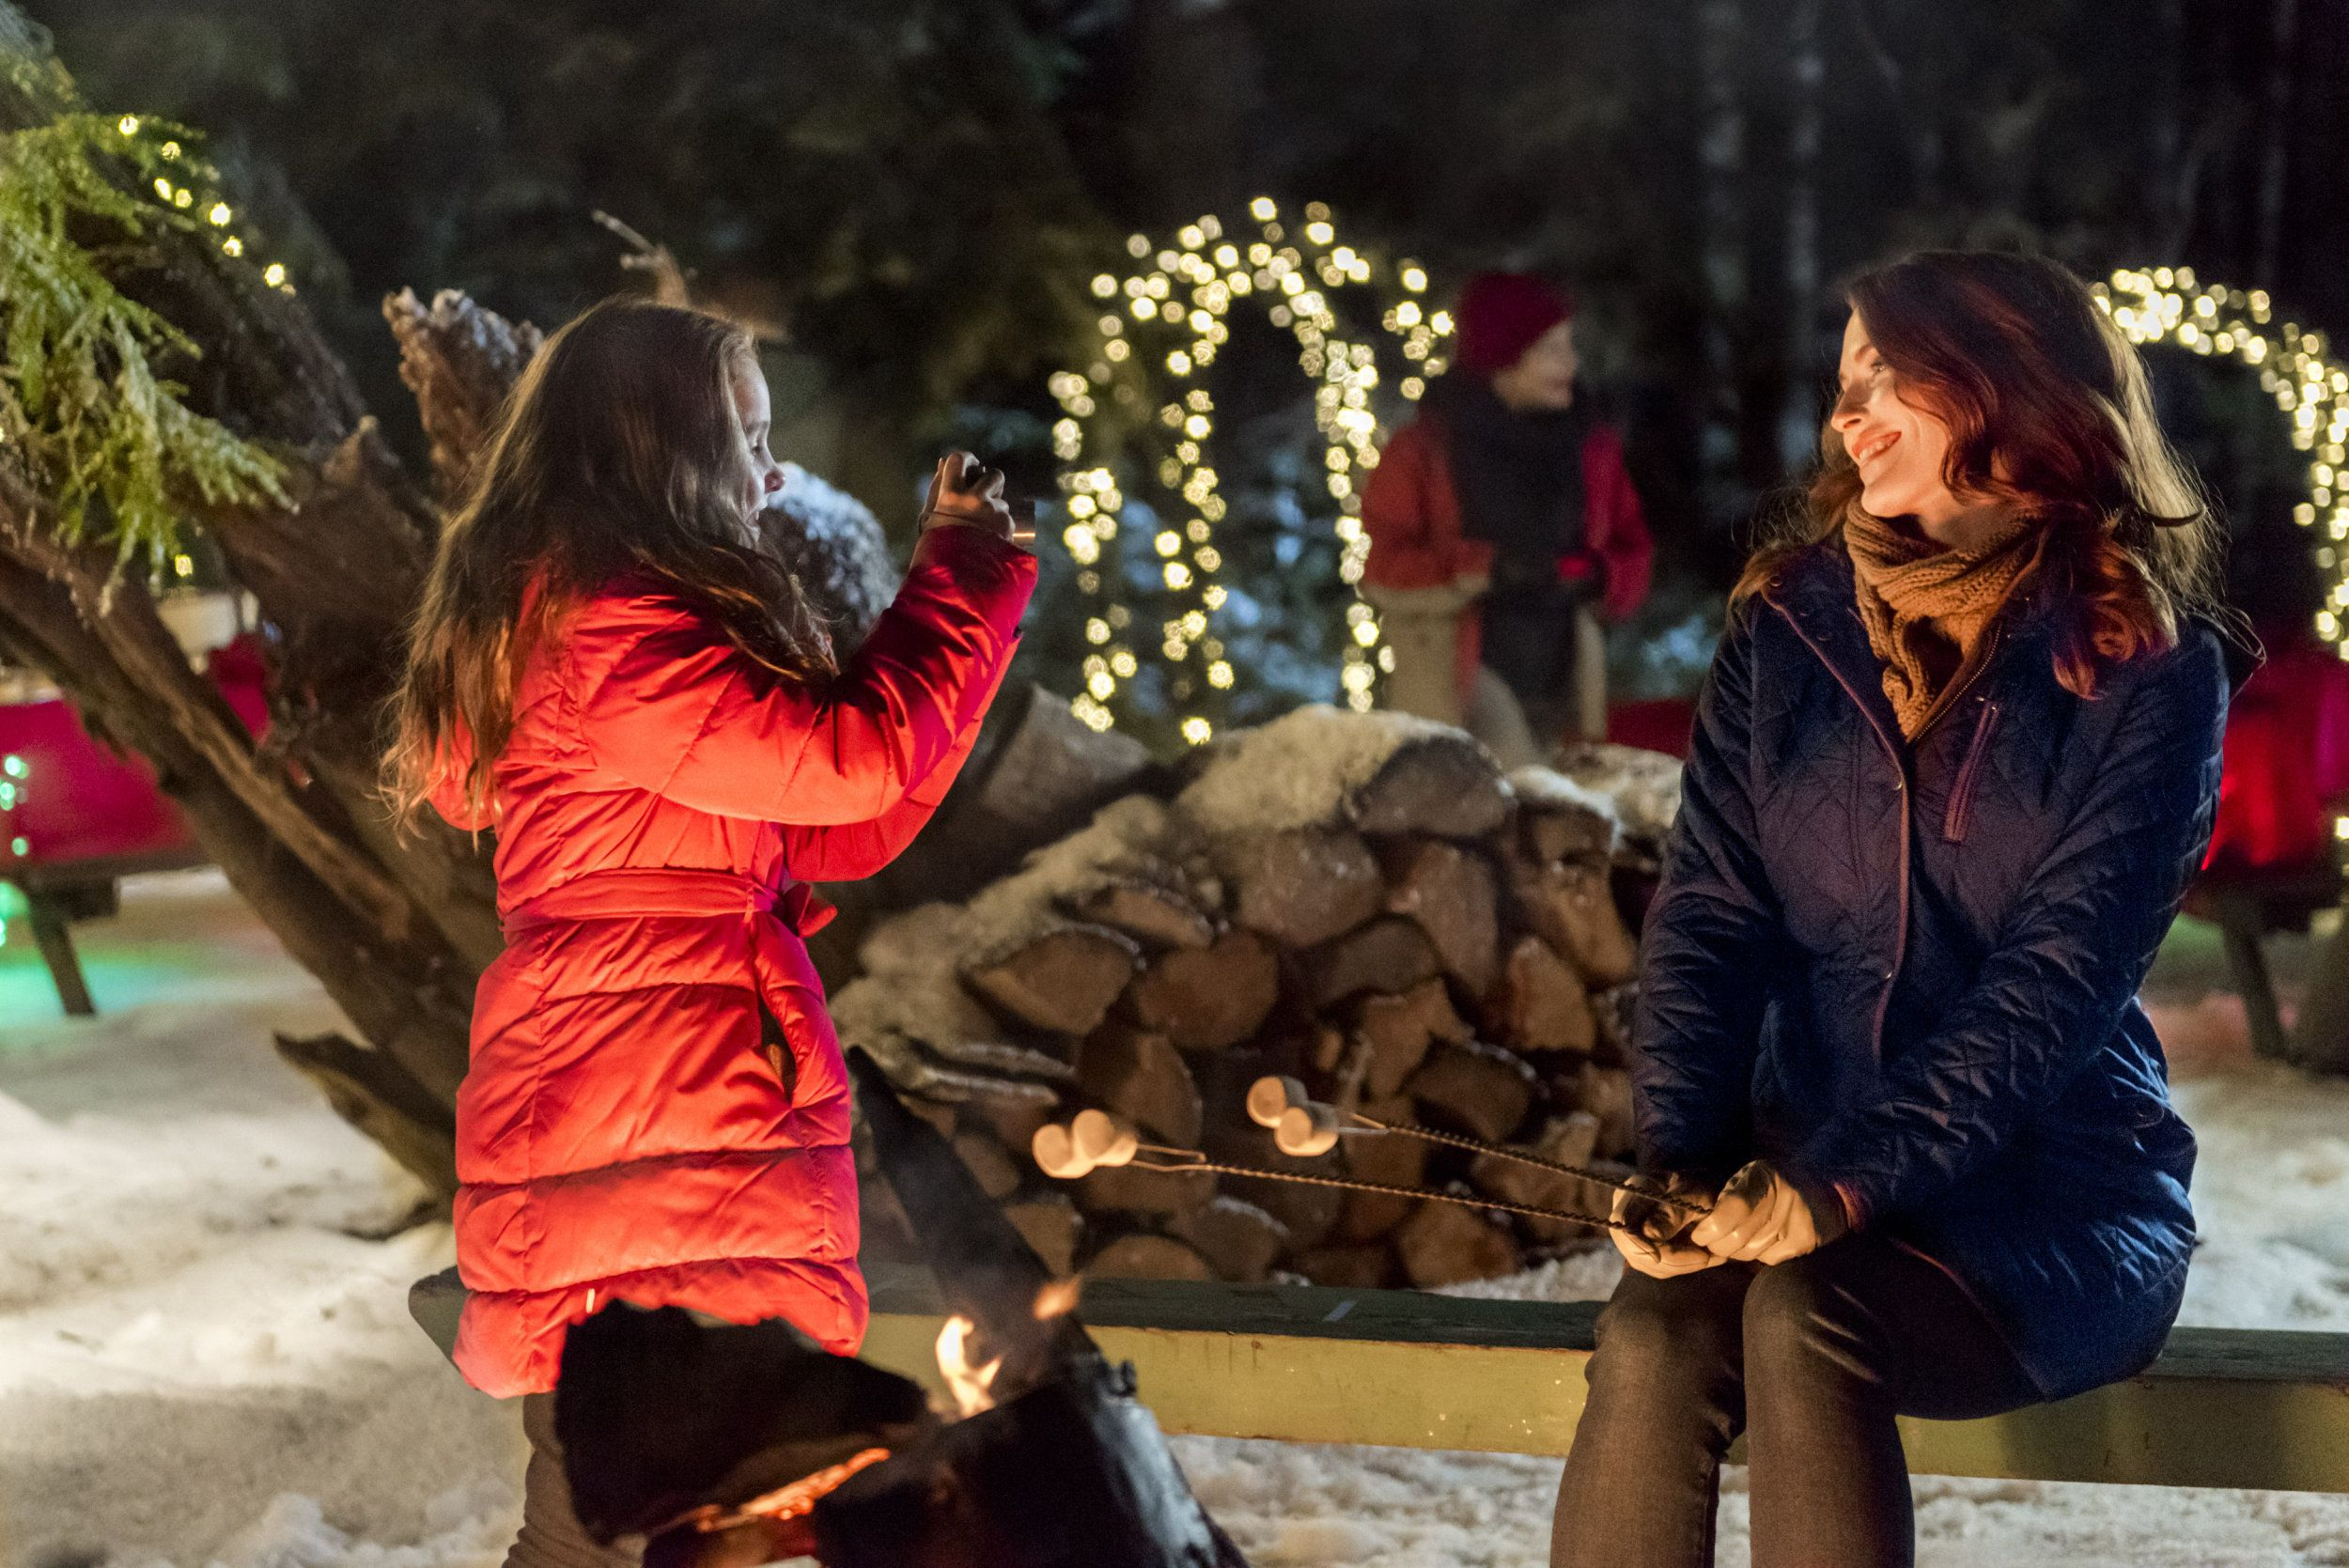 Hallmark Christmas Getaway Cast.Check Out Photos From The Hallmark Channel Original Movie